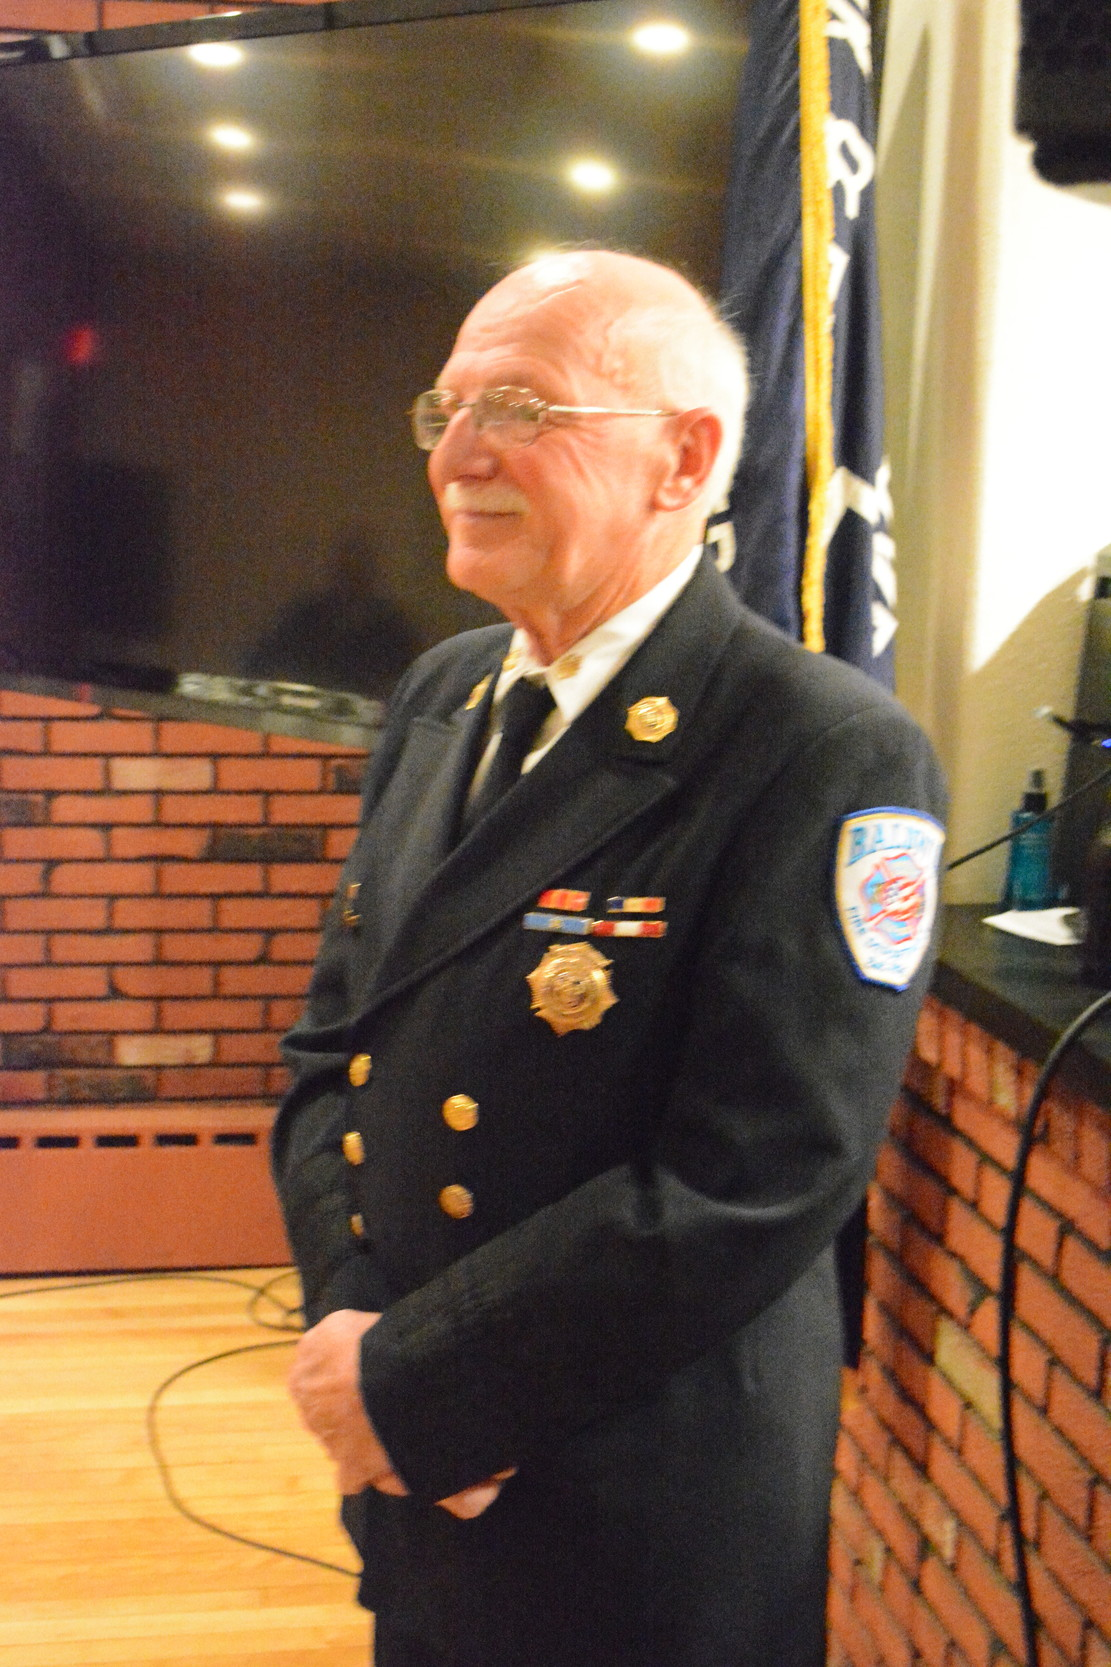 Robert Quackenbush, commissioner of the Baldwin Fire Department, was honored for his 